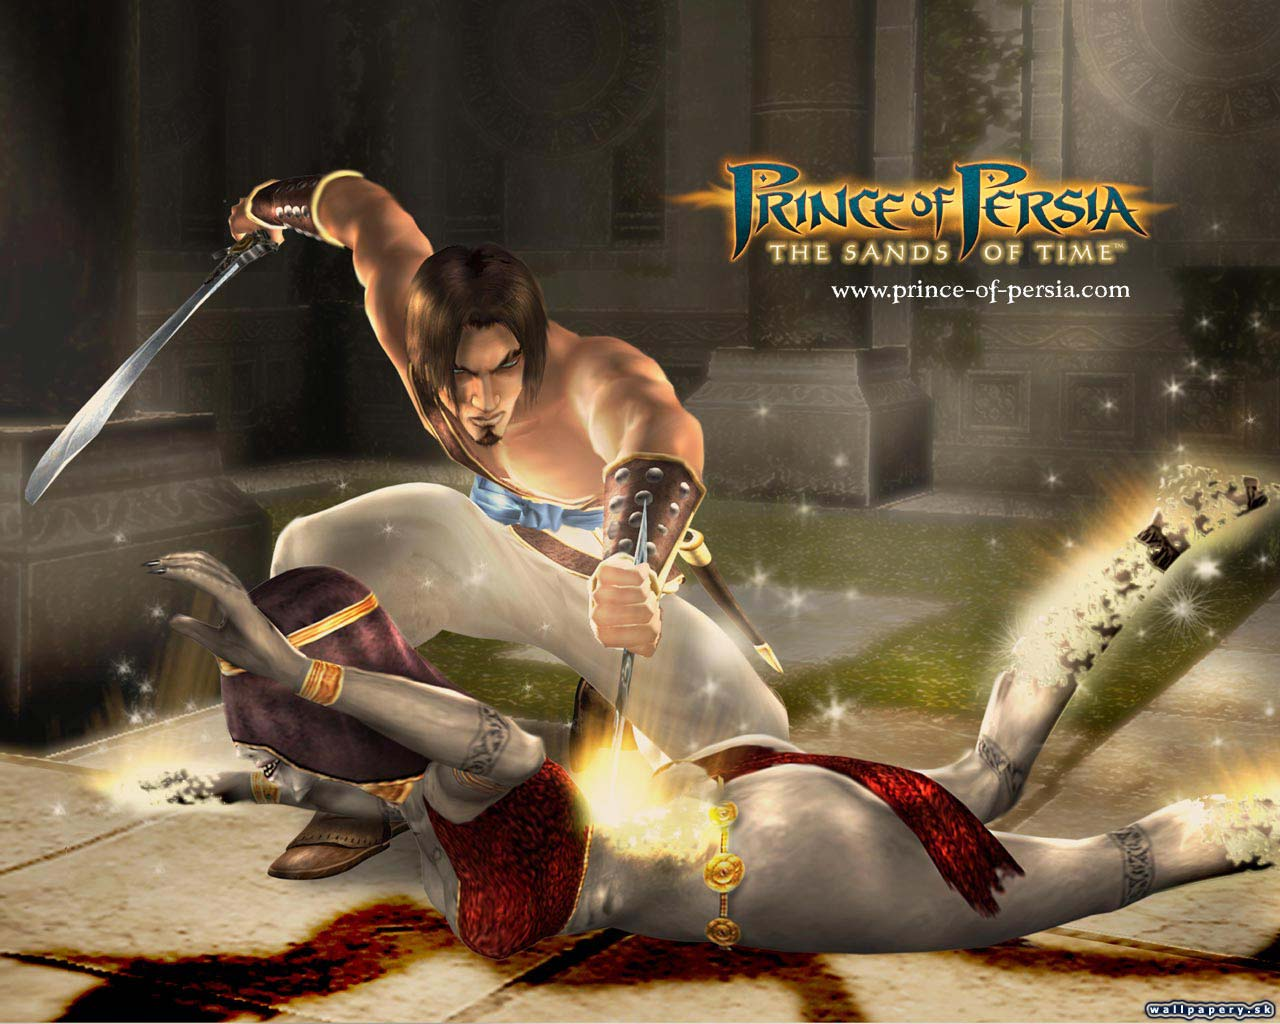 Prince of persia ghost xxx nackt clips